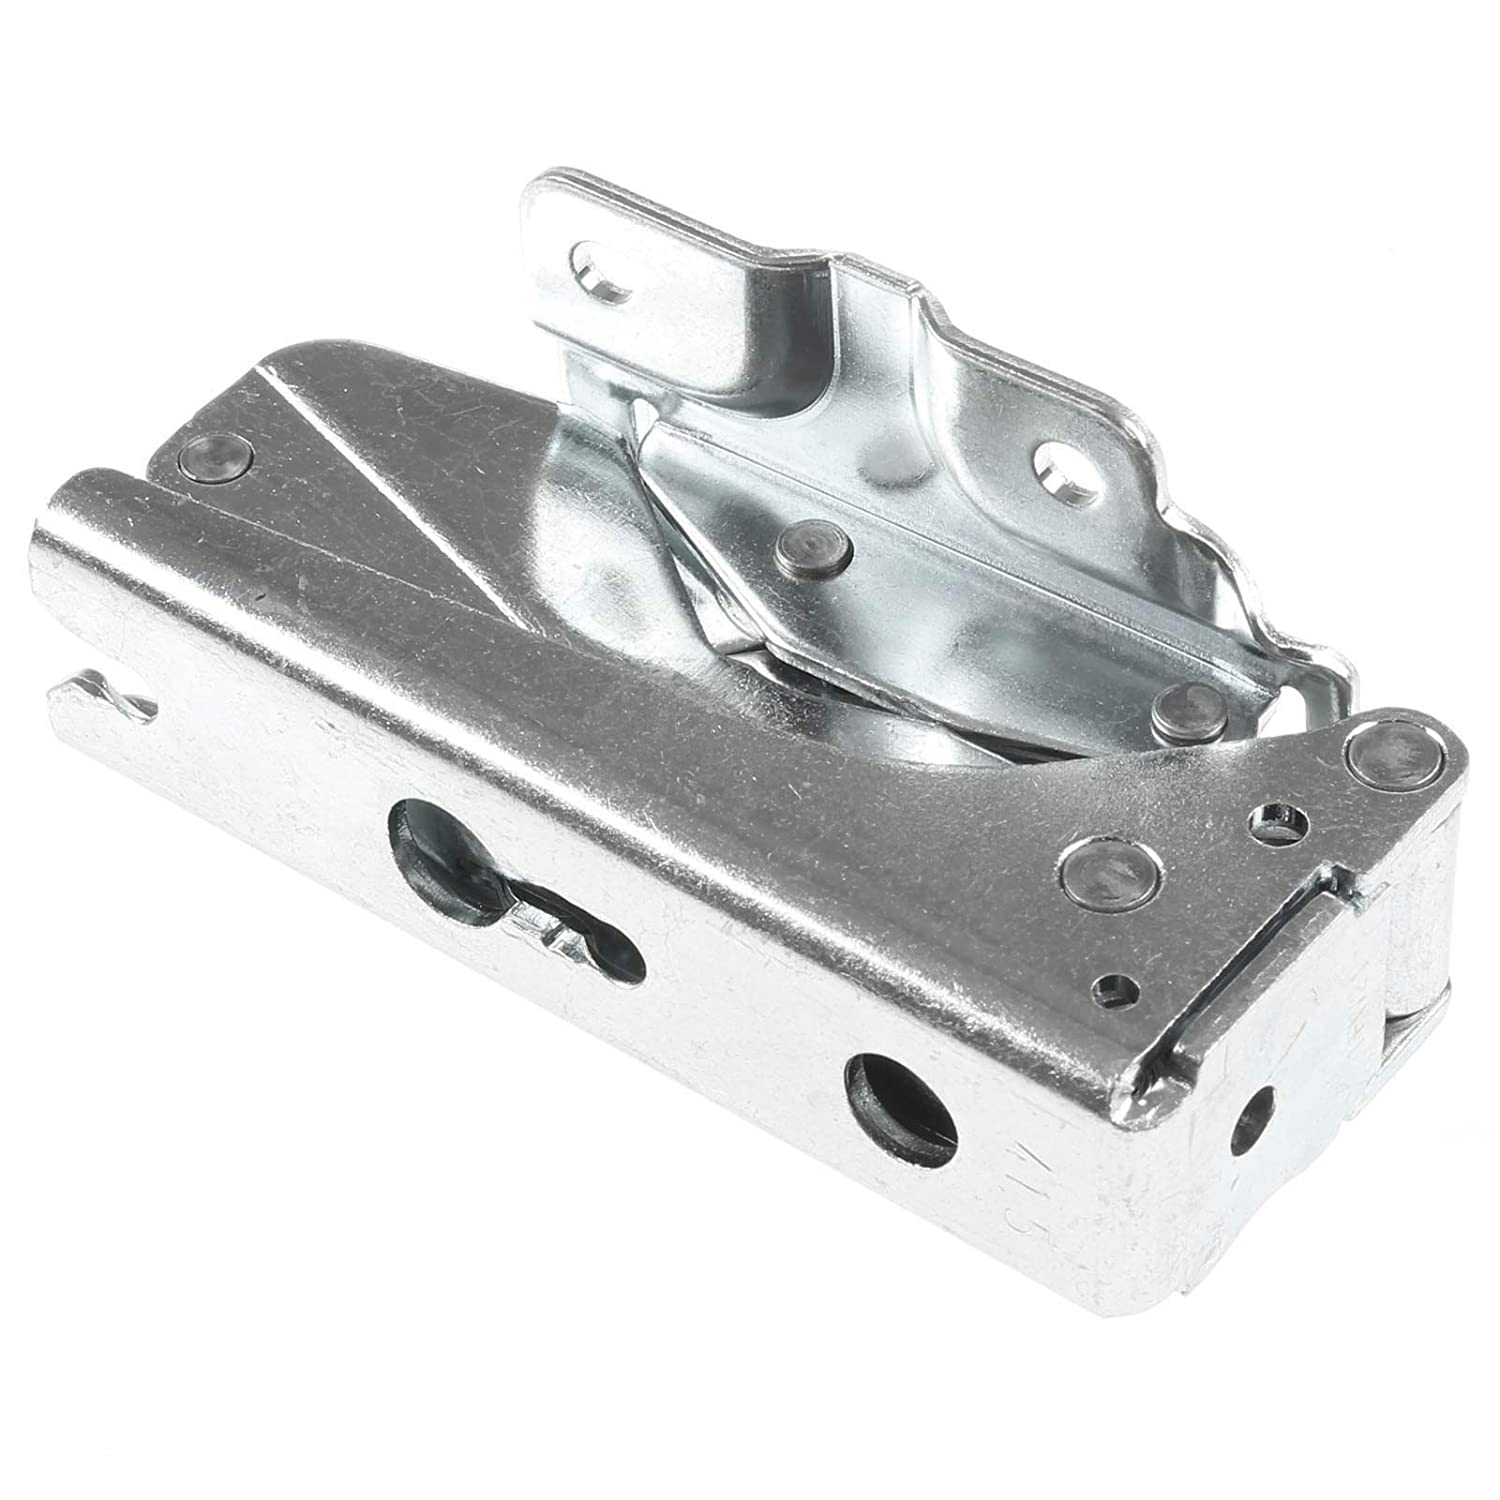 2 x genuino HETTICH nevera integrada HINGES 3362 y 3363 5.0 5.0 ...